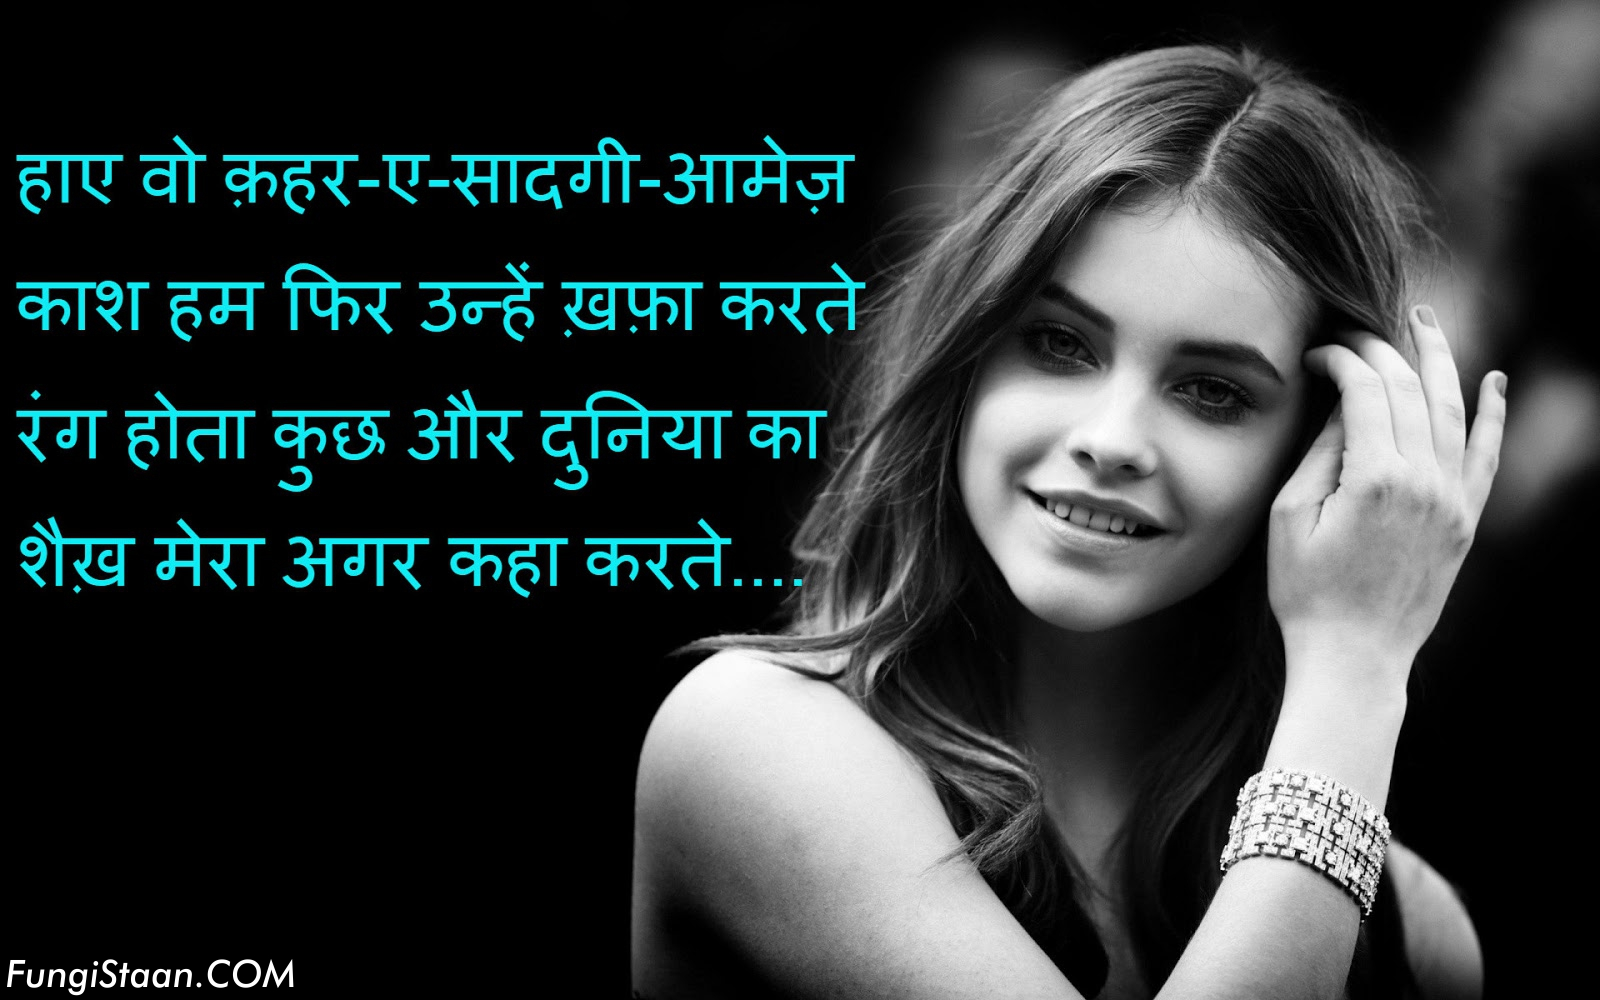 Wallpaper download love shayri - Top30 Hindi Shayari On Sharab Hindi Shayari Dosti In English Love Romantic Image Sms Photos Impages Pics Wallpapers